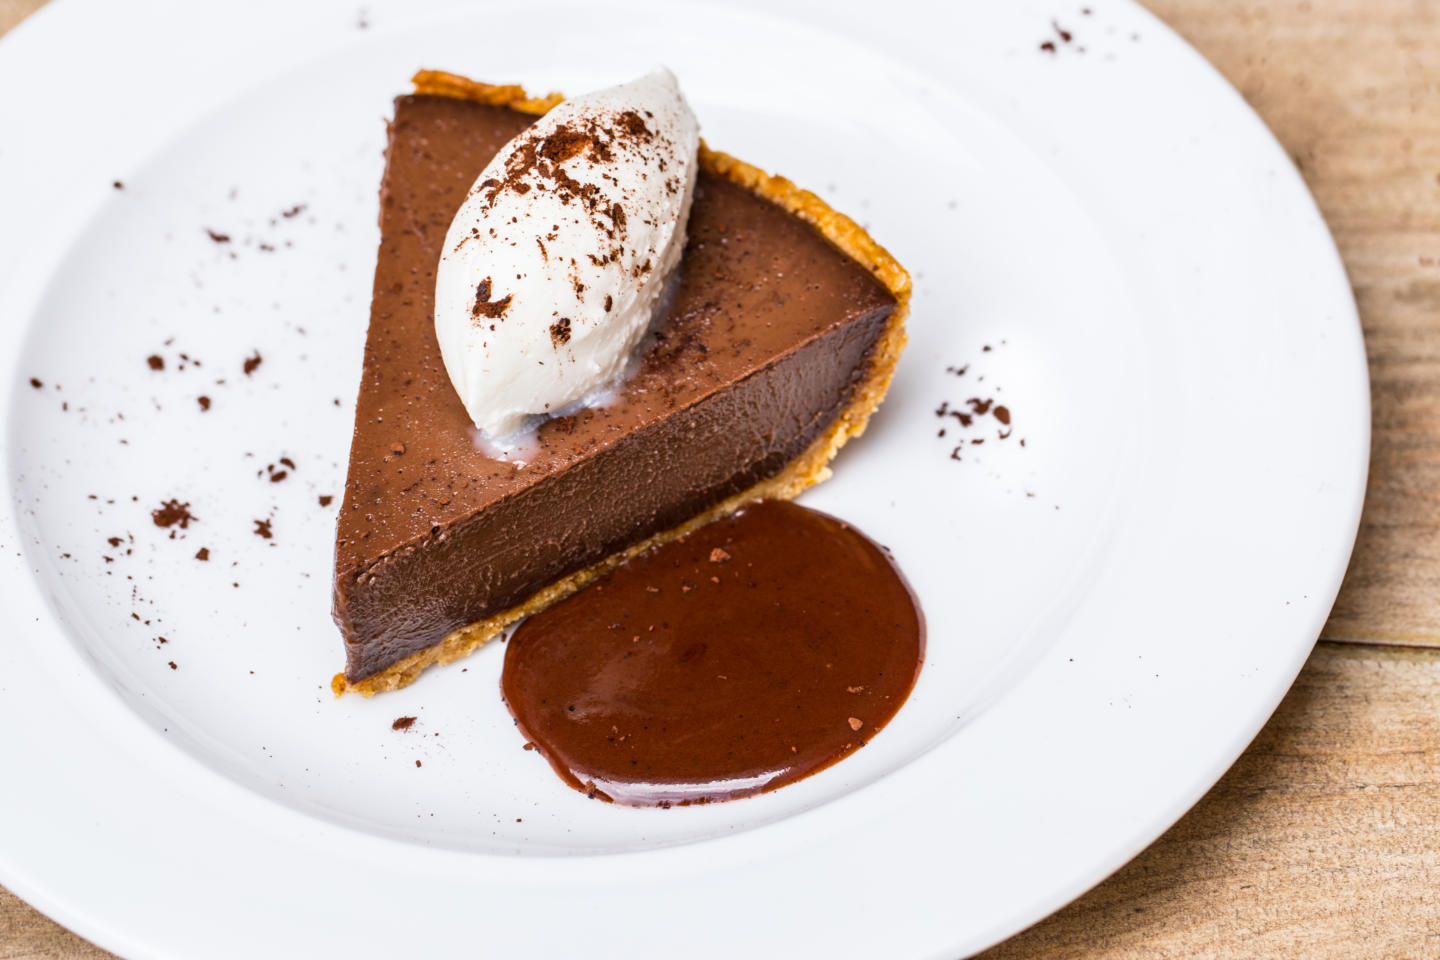 saranello's chocolate pie